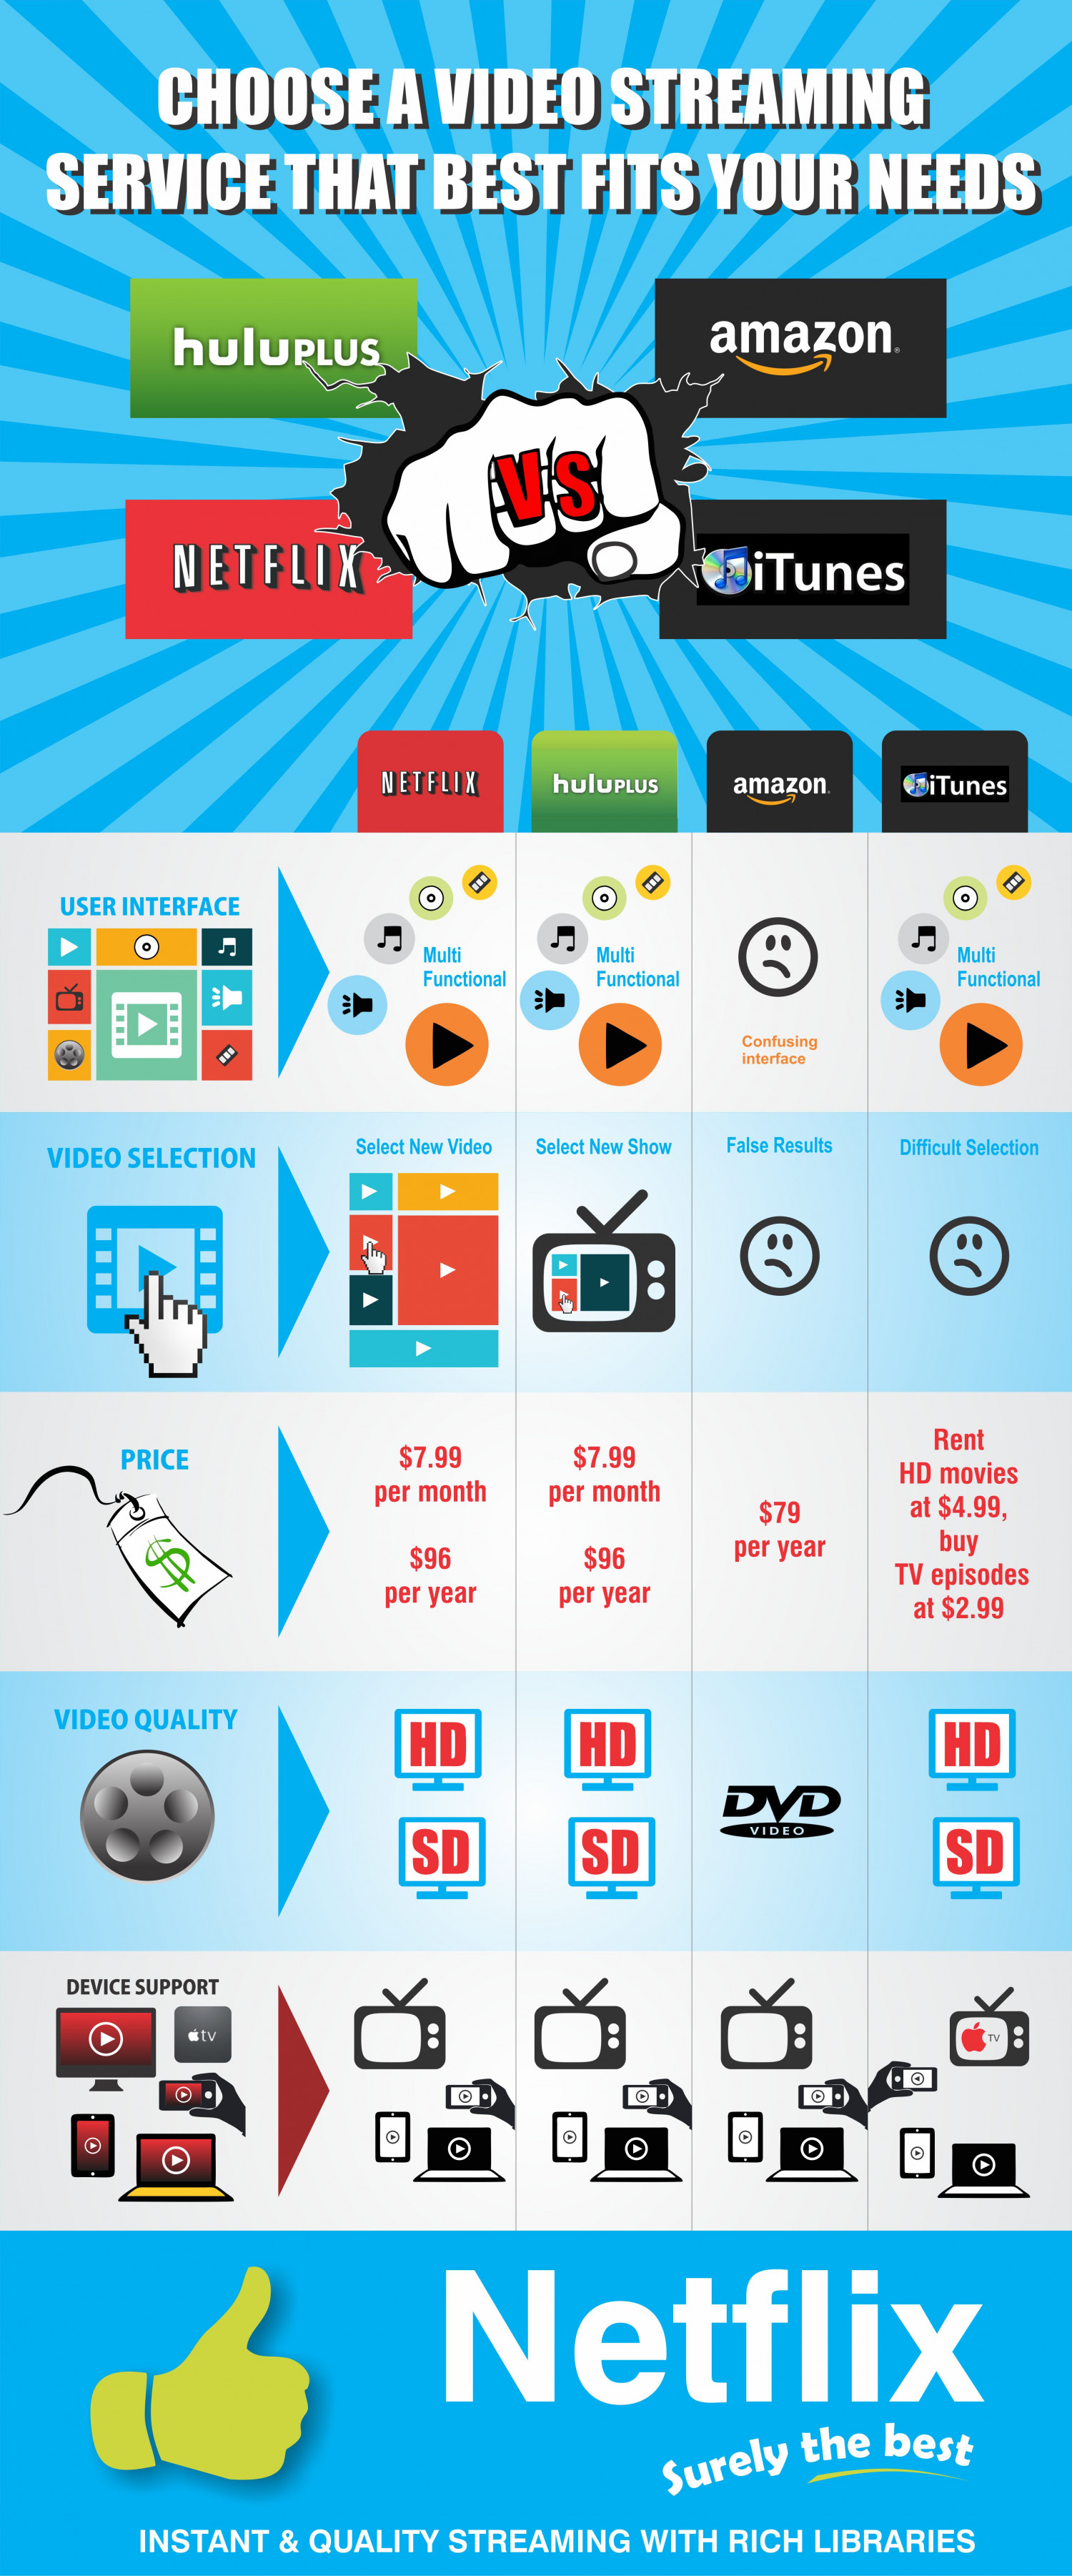 Choose A Video Streaming Service That Best Fits Your Needs Infographic